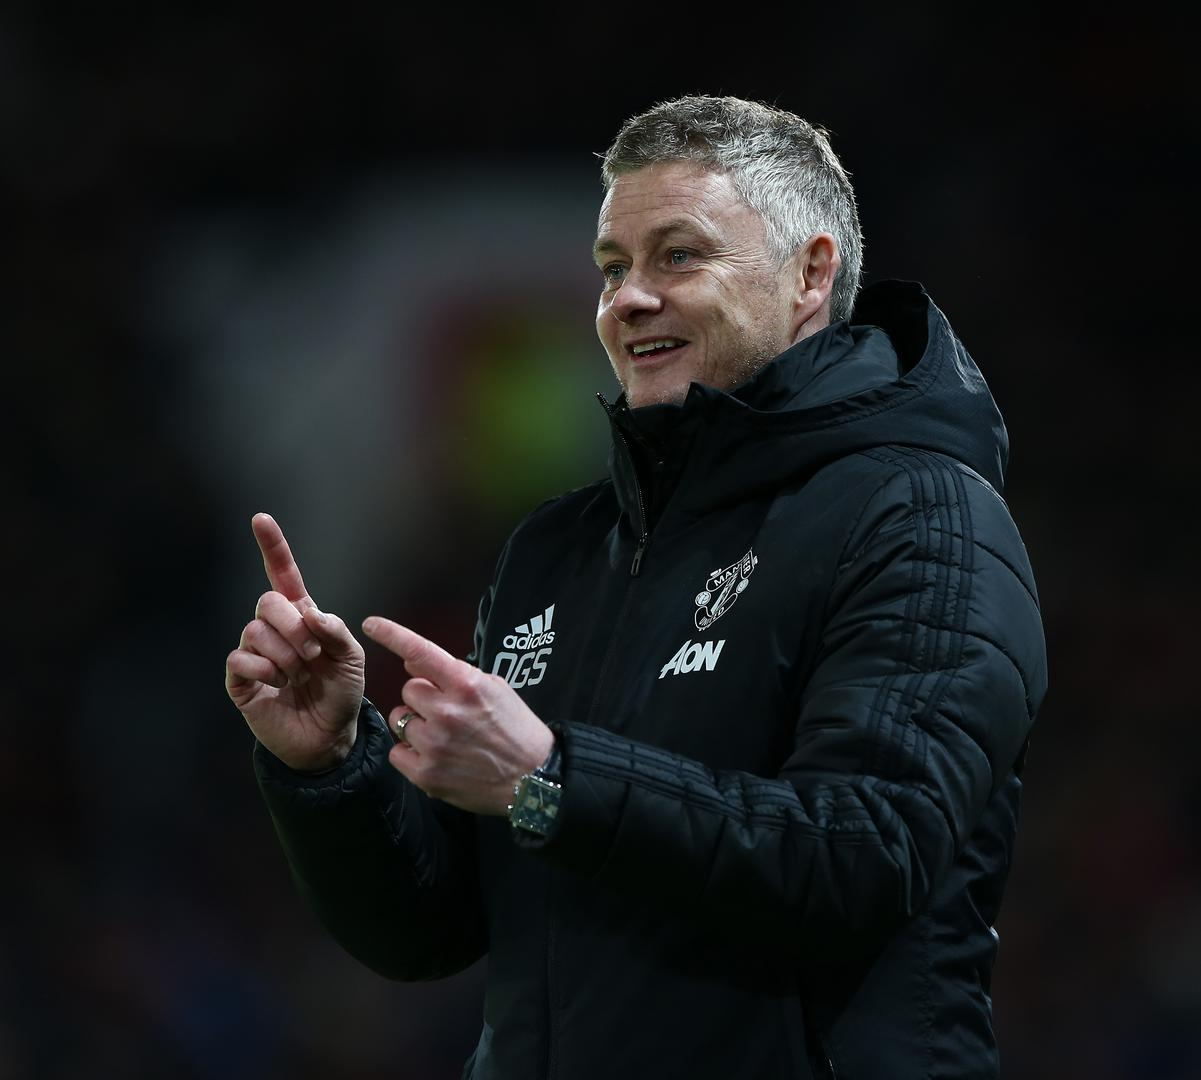 Ole Gunnar Solskjaer pictured during Manchester United match.